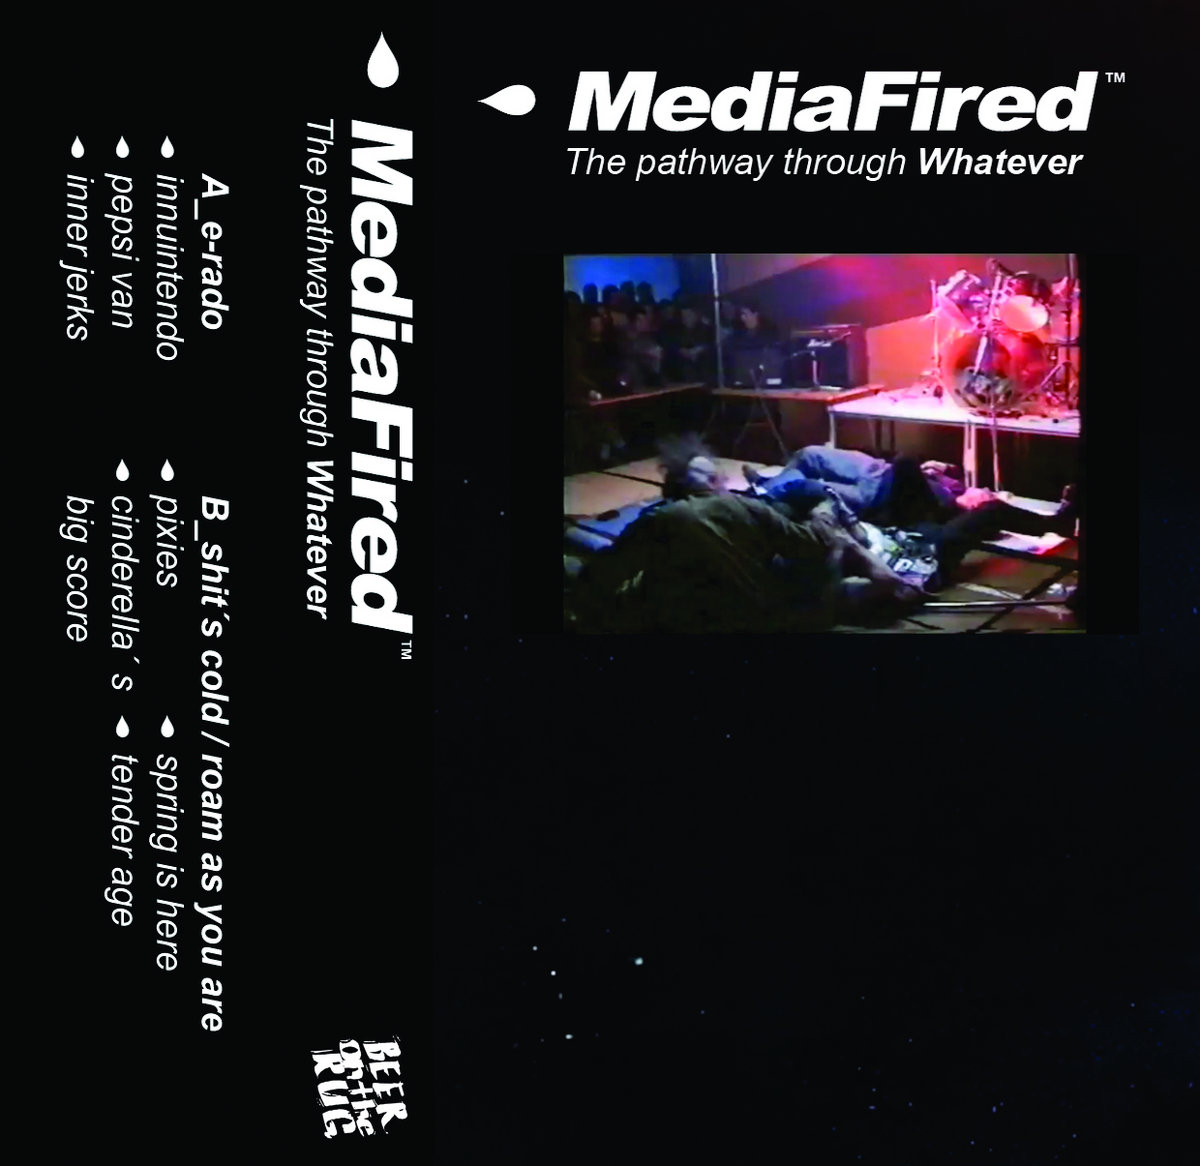 THE PATHWAY THROUGH WHATEVER By MEDIAFIRED